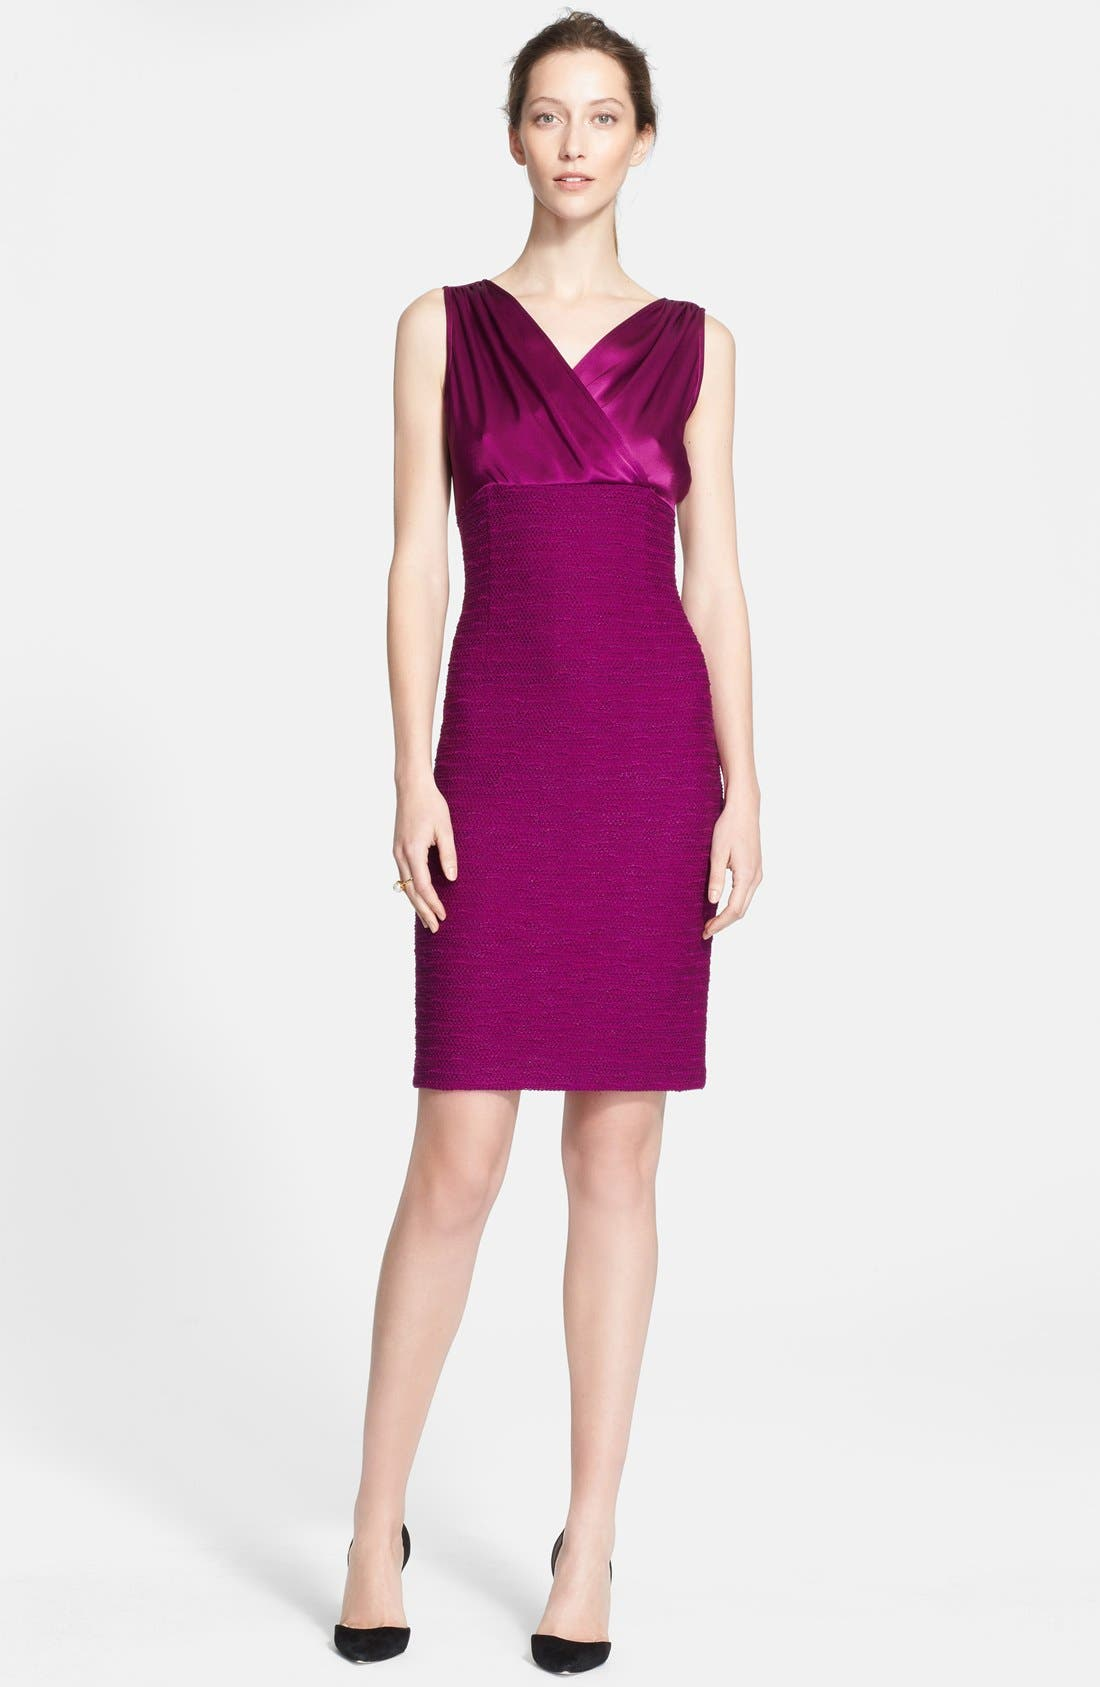 Main Image - St. John Collection Liquid Satin & New Shantung Knit Dress (Online Only)